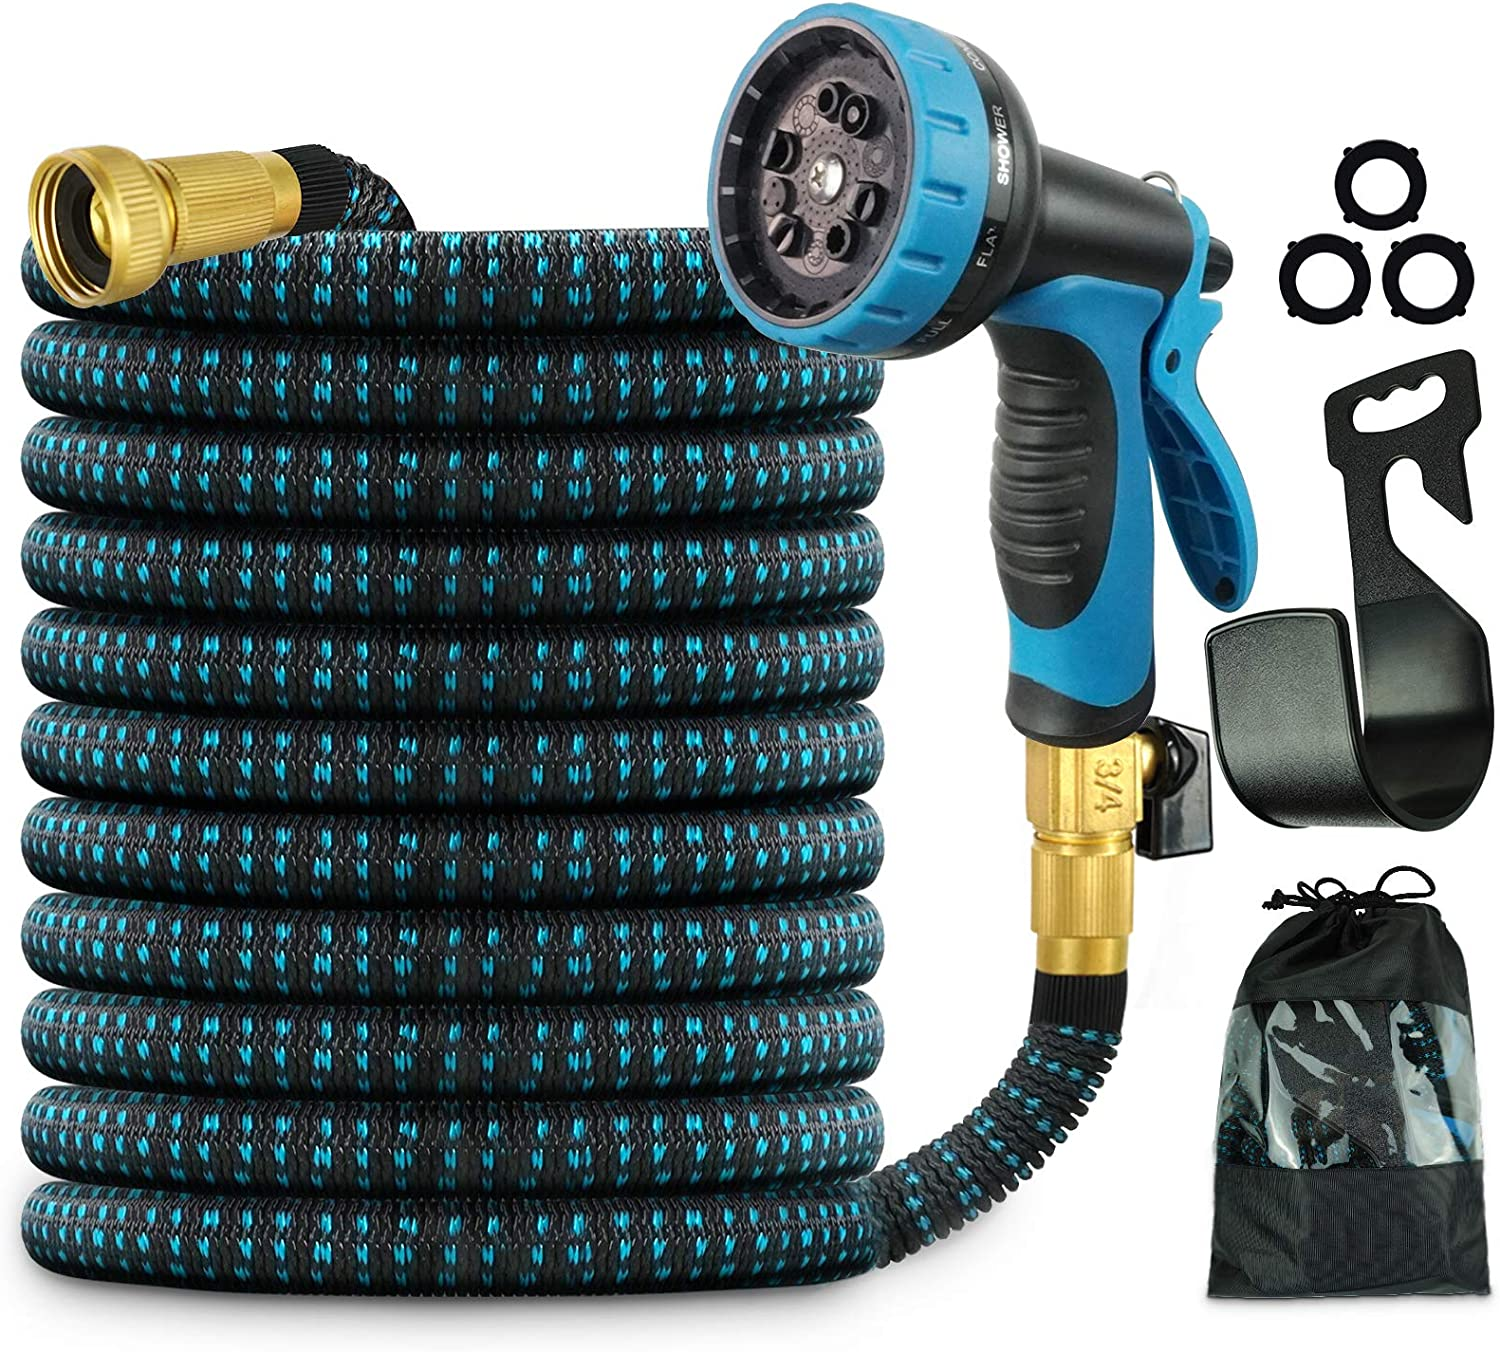 Beaulyn Expandable Garden Hose, 50ft Flexible Water Hose with 10 Function Spray Nozzle, 3750D & 3/4 Inch Solid Brass Connectors Lightweight Expanding Hose, Best Choice for Watering and Washing